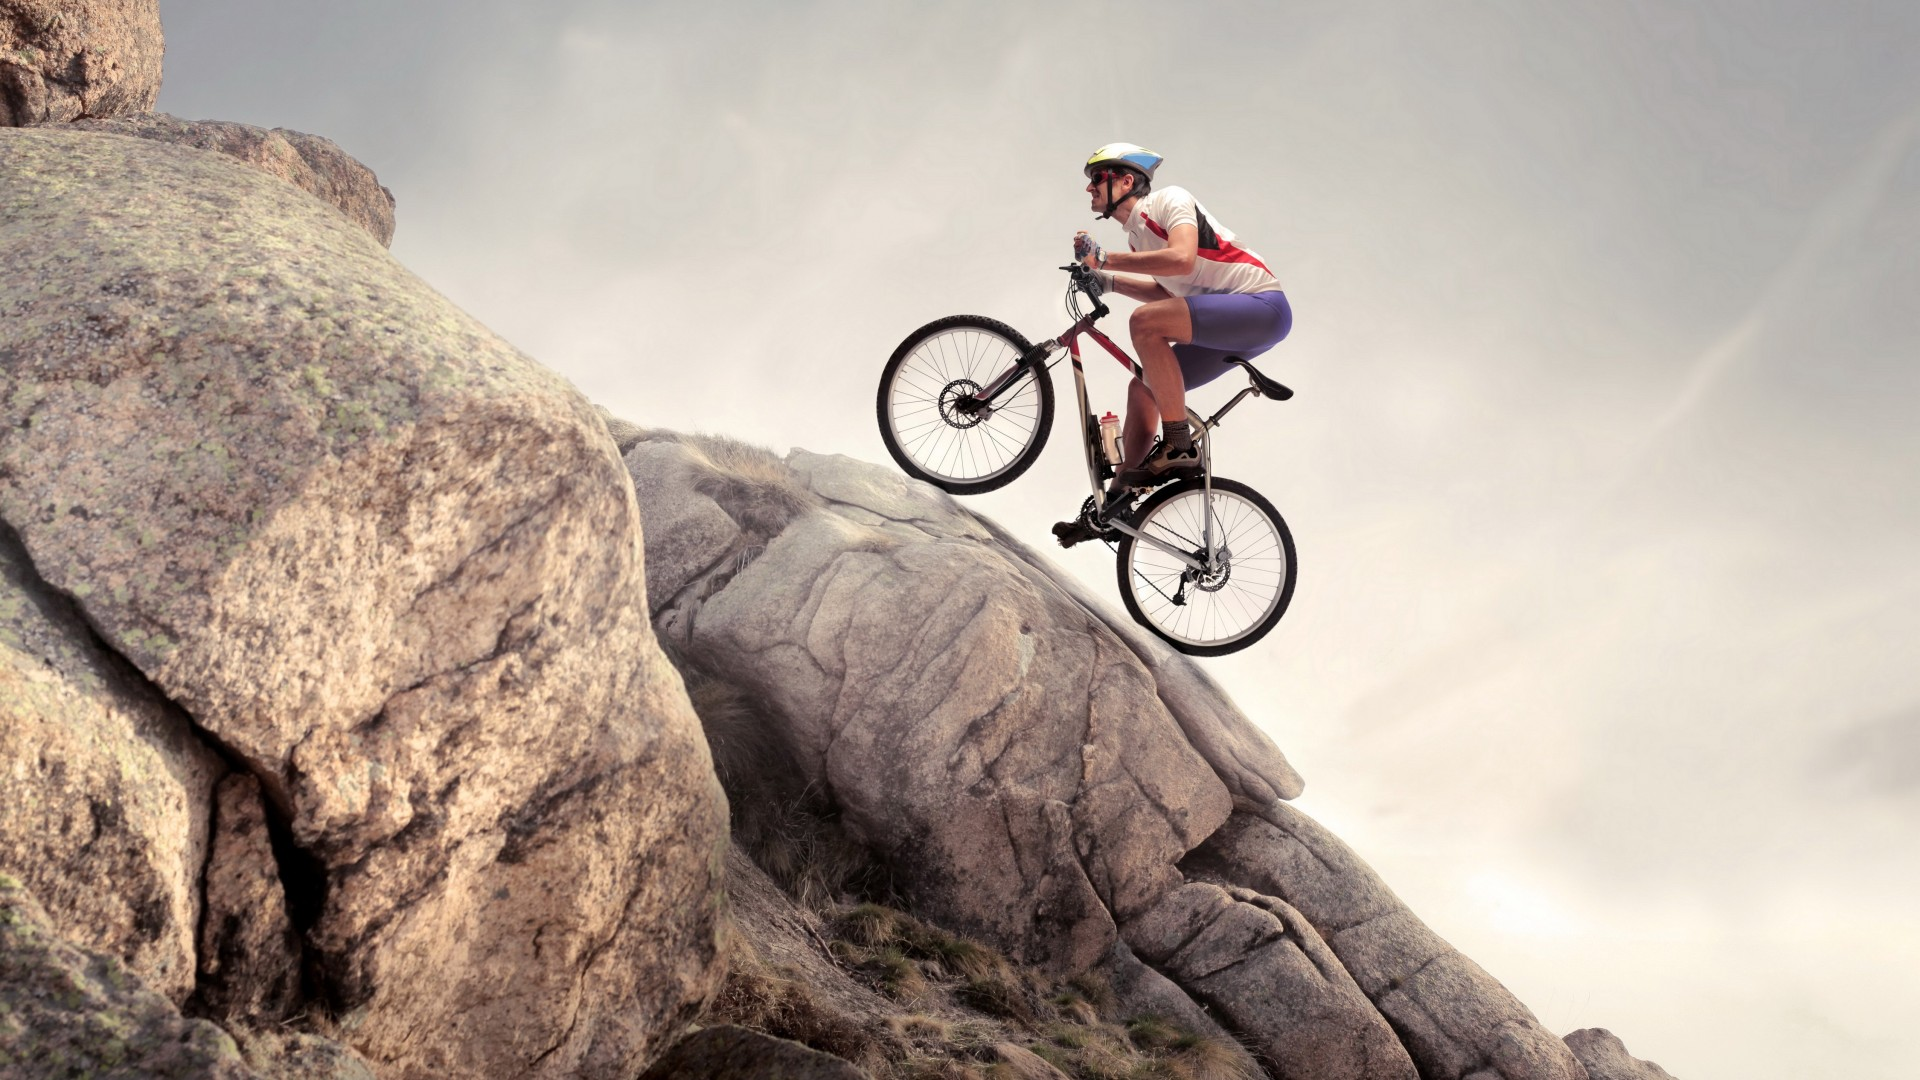 rock-1920×1080-climbing-cycle-extreme-11448